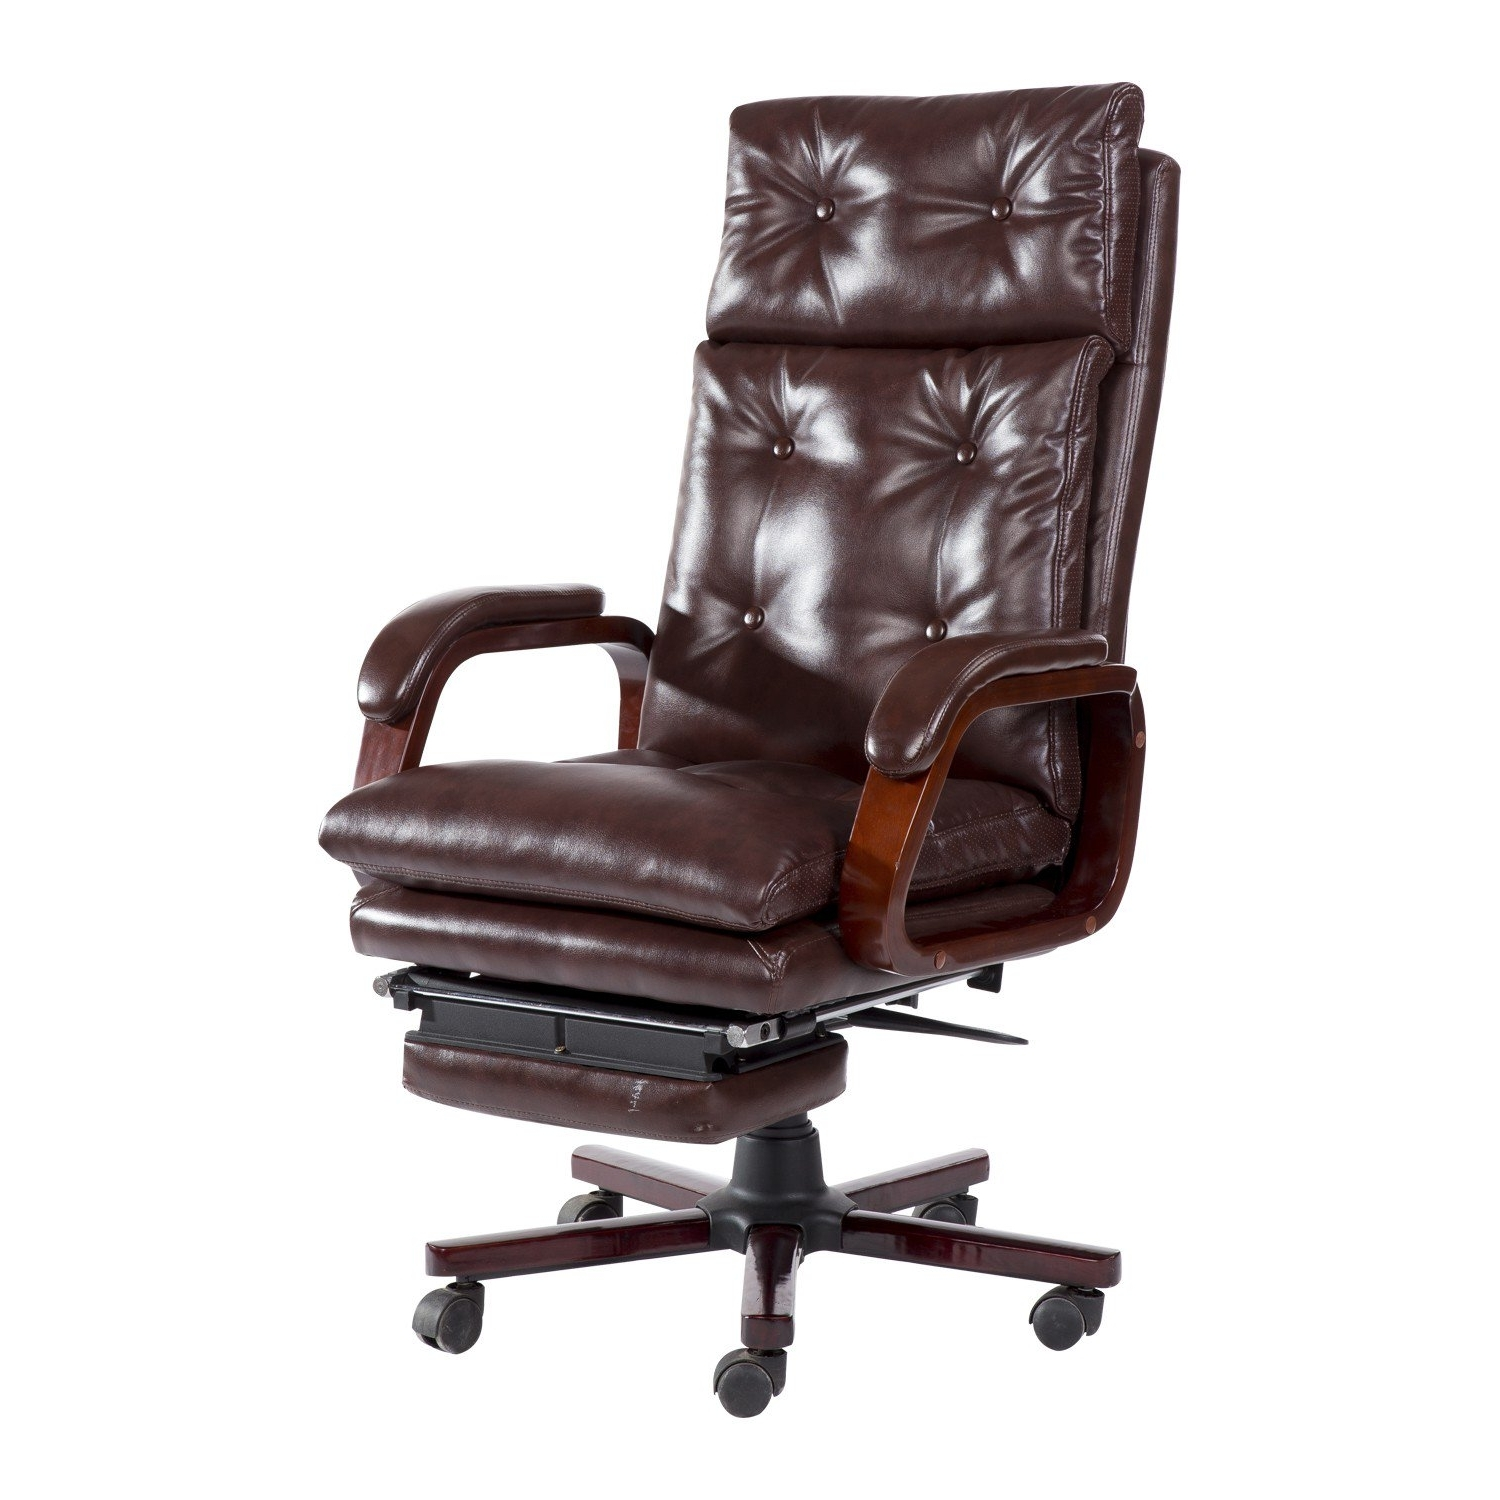 2018 Homcom High Back Pu Leather Executive Reclining Office Chair With In Executive Office Chairs With Footrest (View 1 of 20)